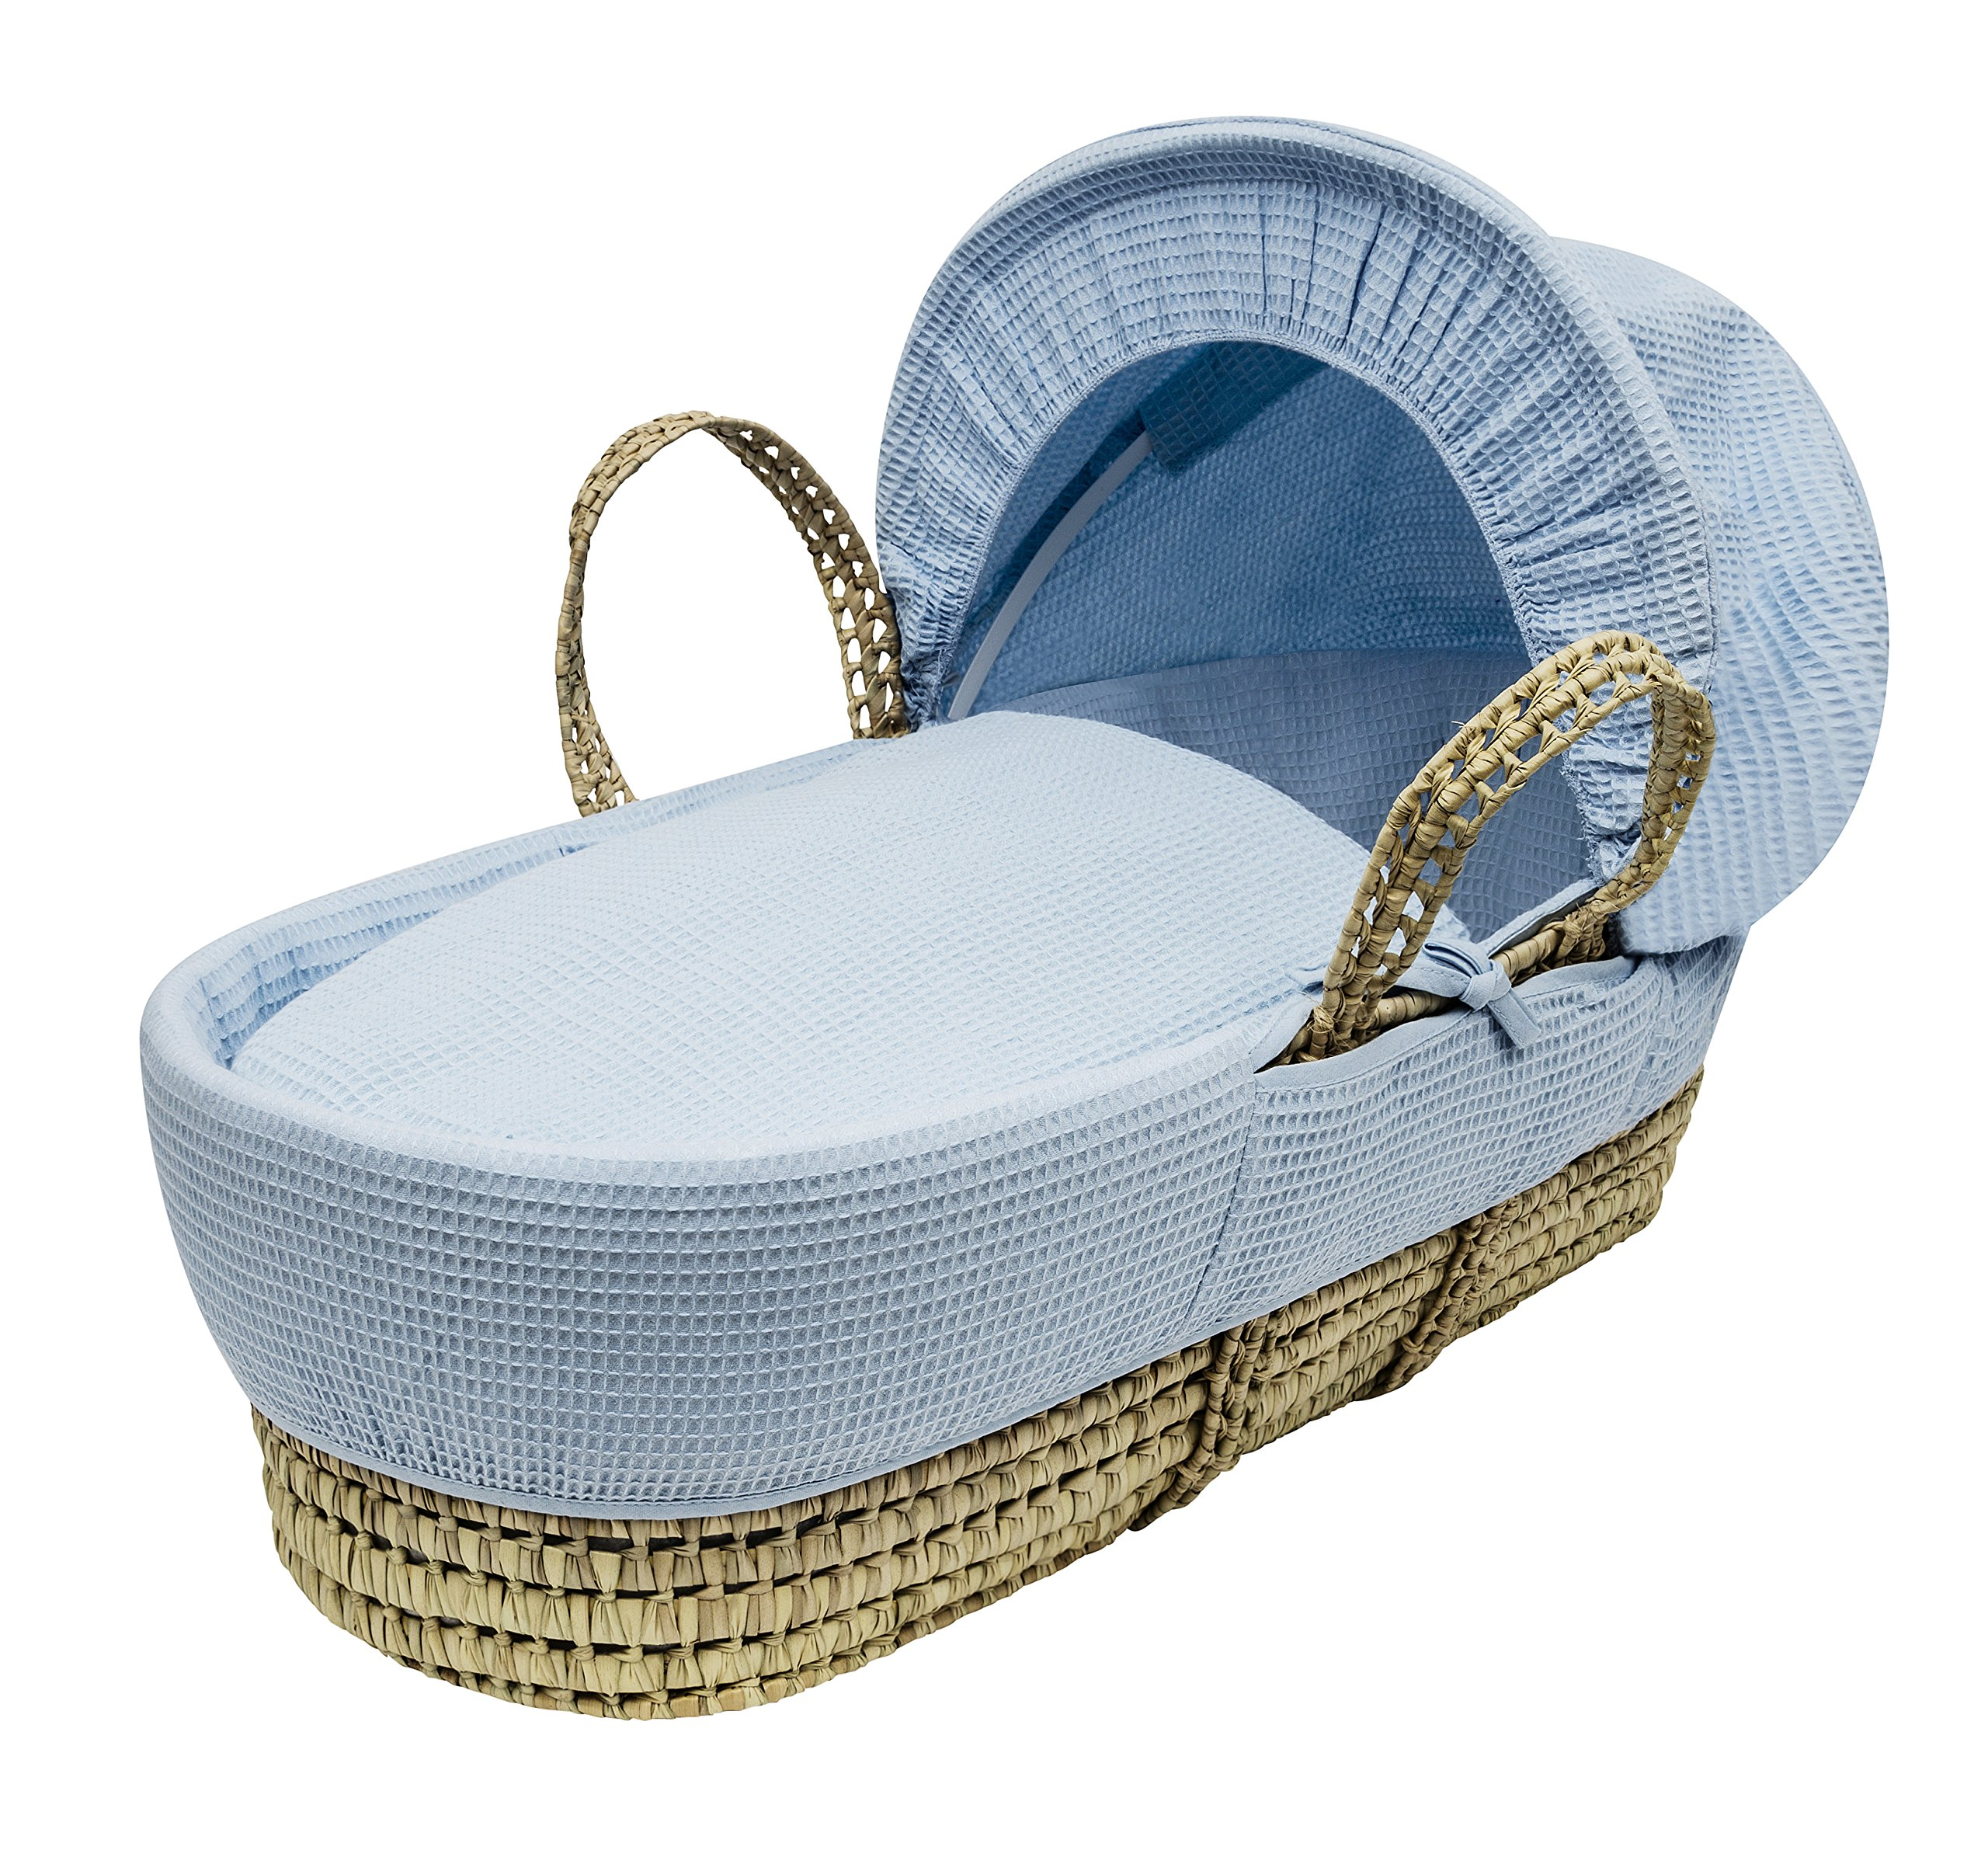 Blue Waffle Moses Basket Dressings only(Basket not included) Elegant Baby Dressings For Moses Baskets Includes Padding,Quilt, Liner,Fabric Hood Basket and Mattress and Hood bars are NOT included 2